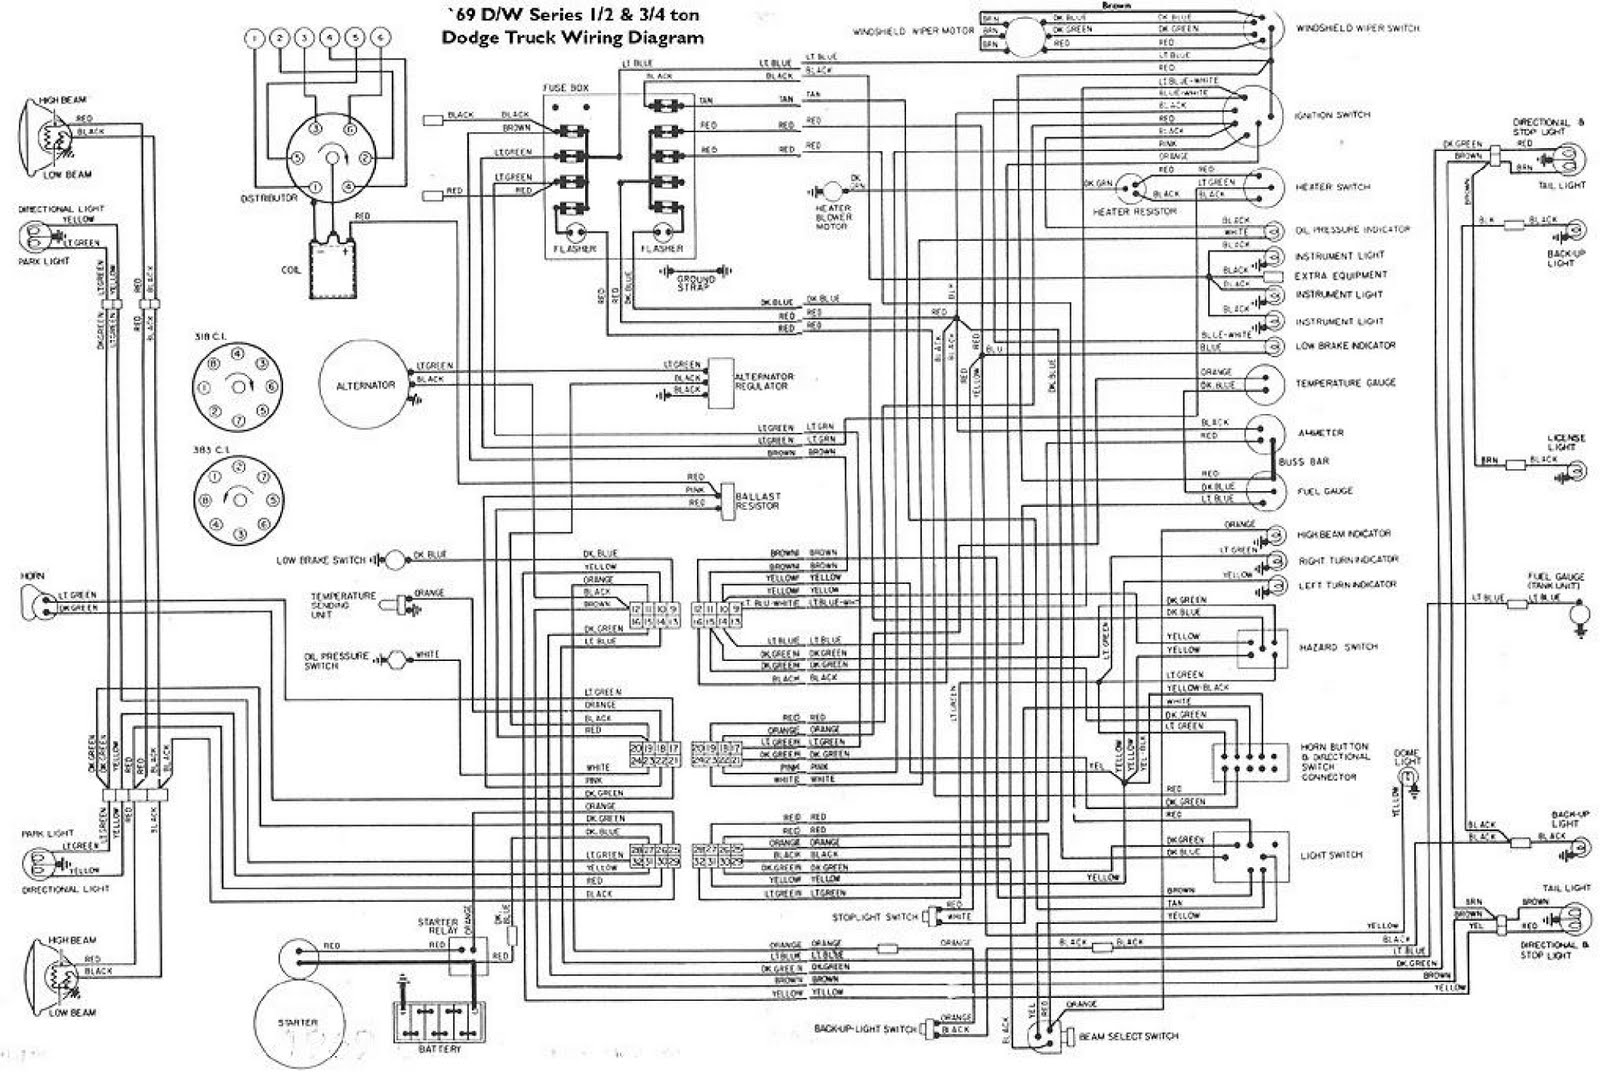 1985 Dodge 600 Wiring Diagram Auto Electrical Fuse Box